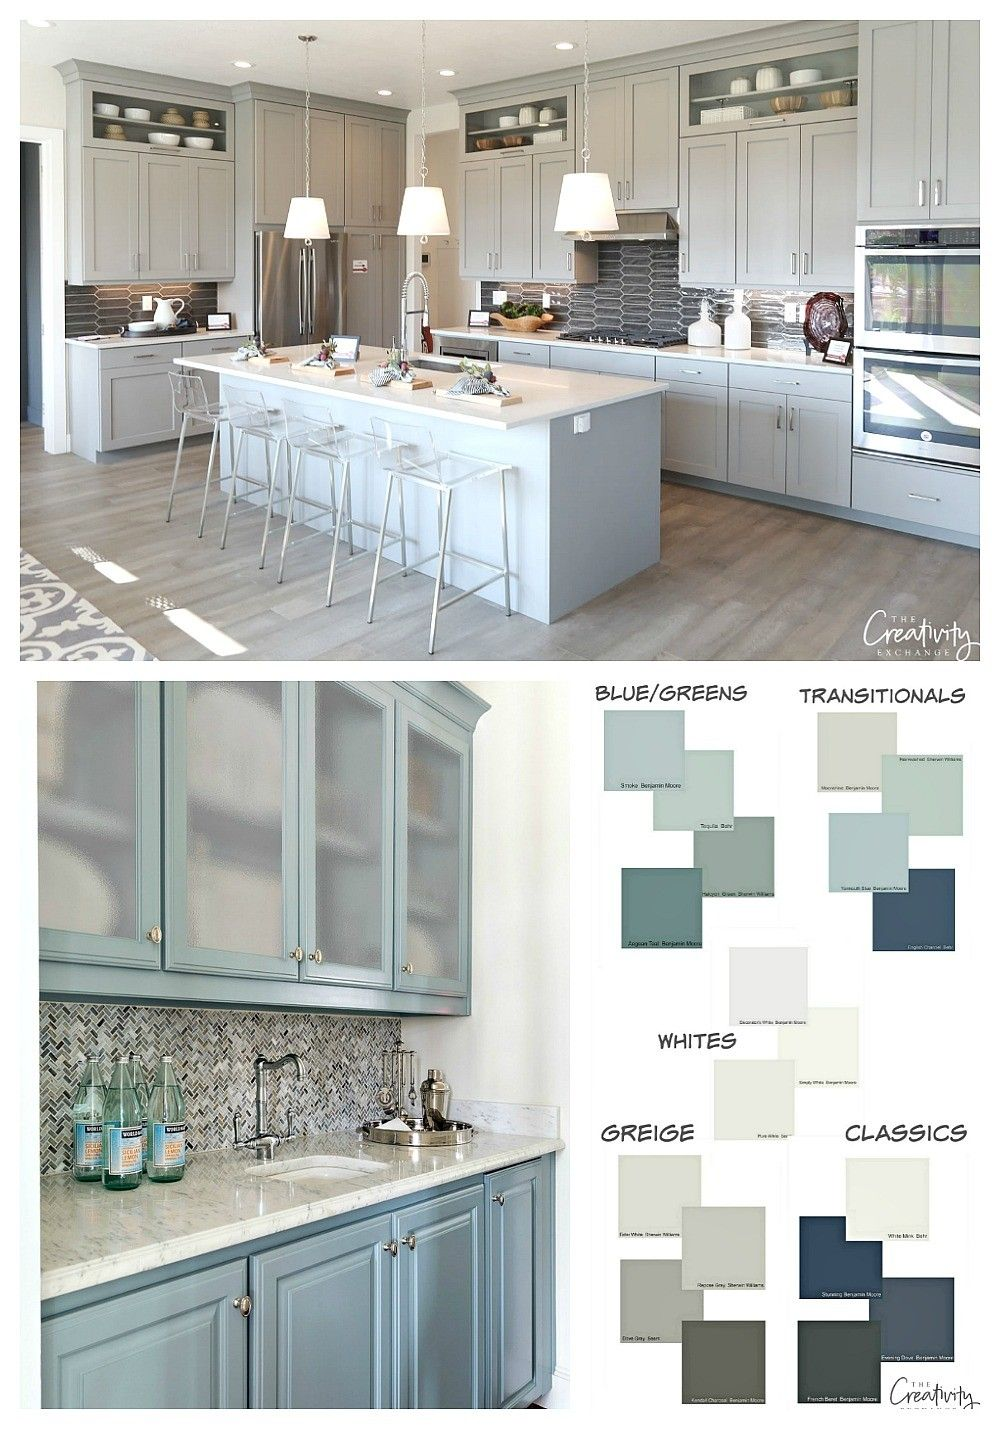 Timeless Kitchen Shelve Color Schemes Ideas Painted Kitchen Cabinets Colors Cabinet Paint Colors Timeless Kitchen